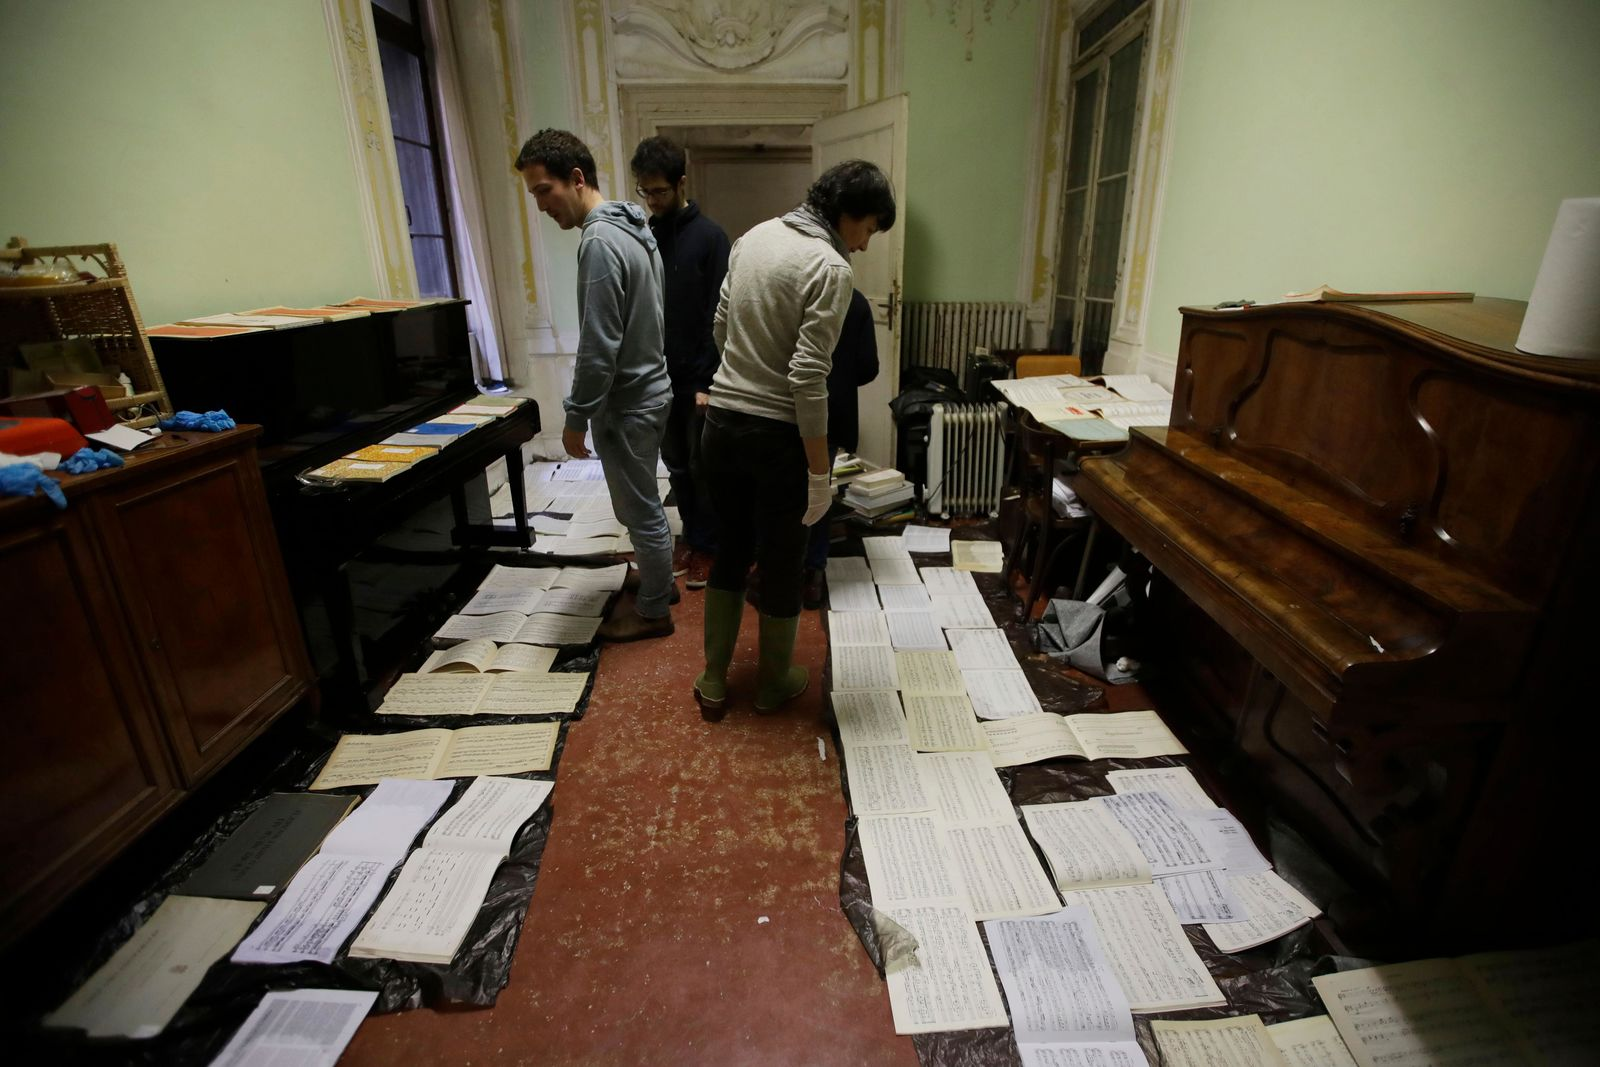 Volunteers try to save ancient music sheets by placing them to dry at the first floor of Venice Conservatory after recovering them from ground floor, Italy, Saturday, Nov. 16, 2019. High tidal waters returned to Venice on Saturday, four days after the city experienced its worst flooding in 50 years. Young Venetians are responding to the worst flood in their lifetimes by volunteering to help salvage manuscripts, clear out waterlogged books and lend a hand where needed throughout the stricken city.(AP Photo/Luca Bruno)